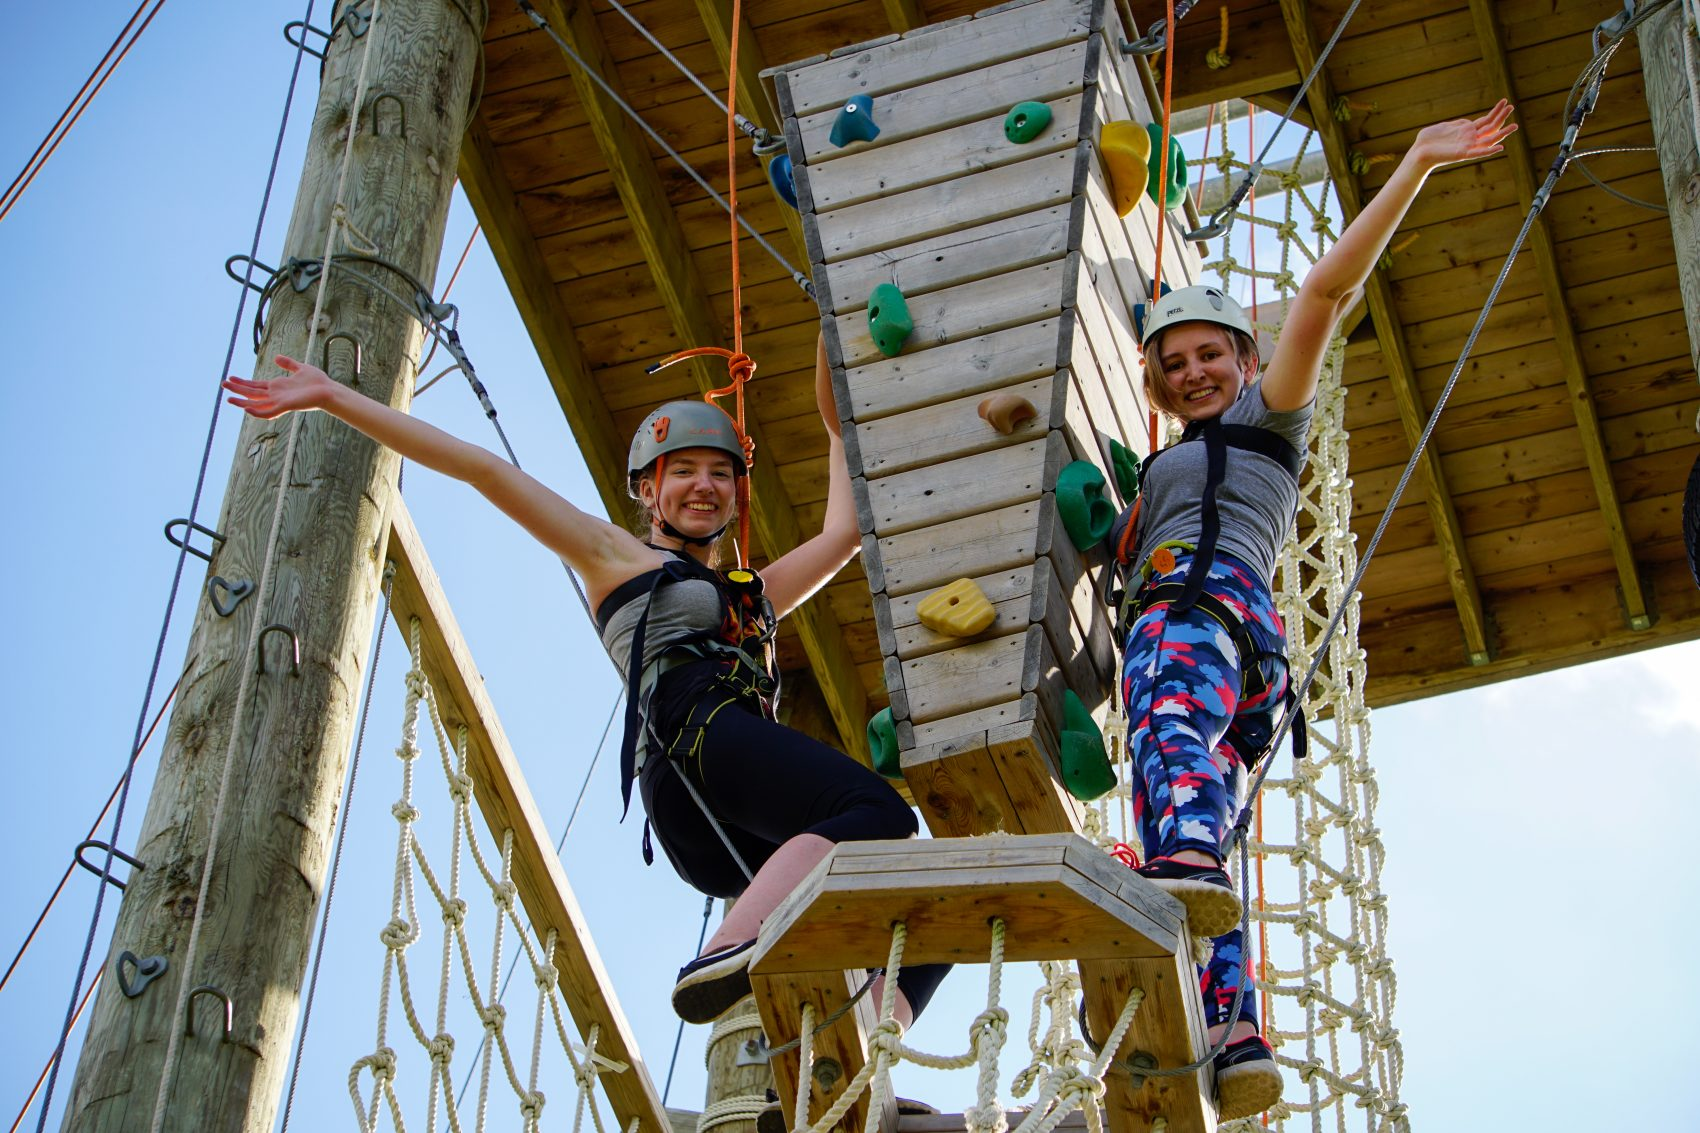 Two campers stretch their arms out in the air as they complete their climb on the adventure tower at Camp Kintail.